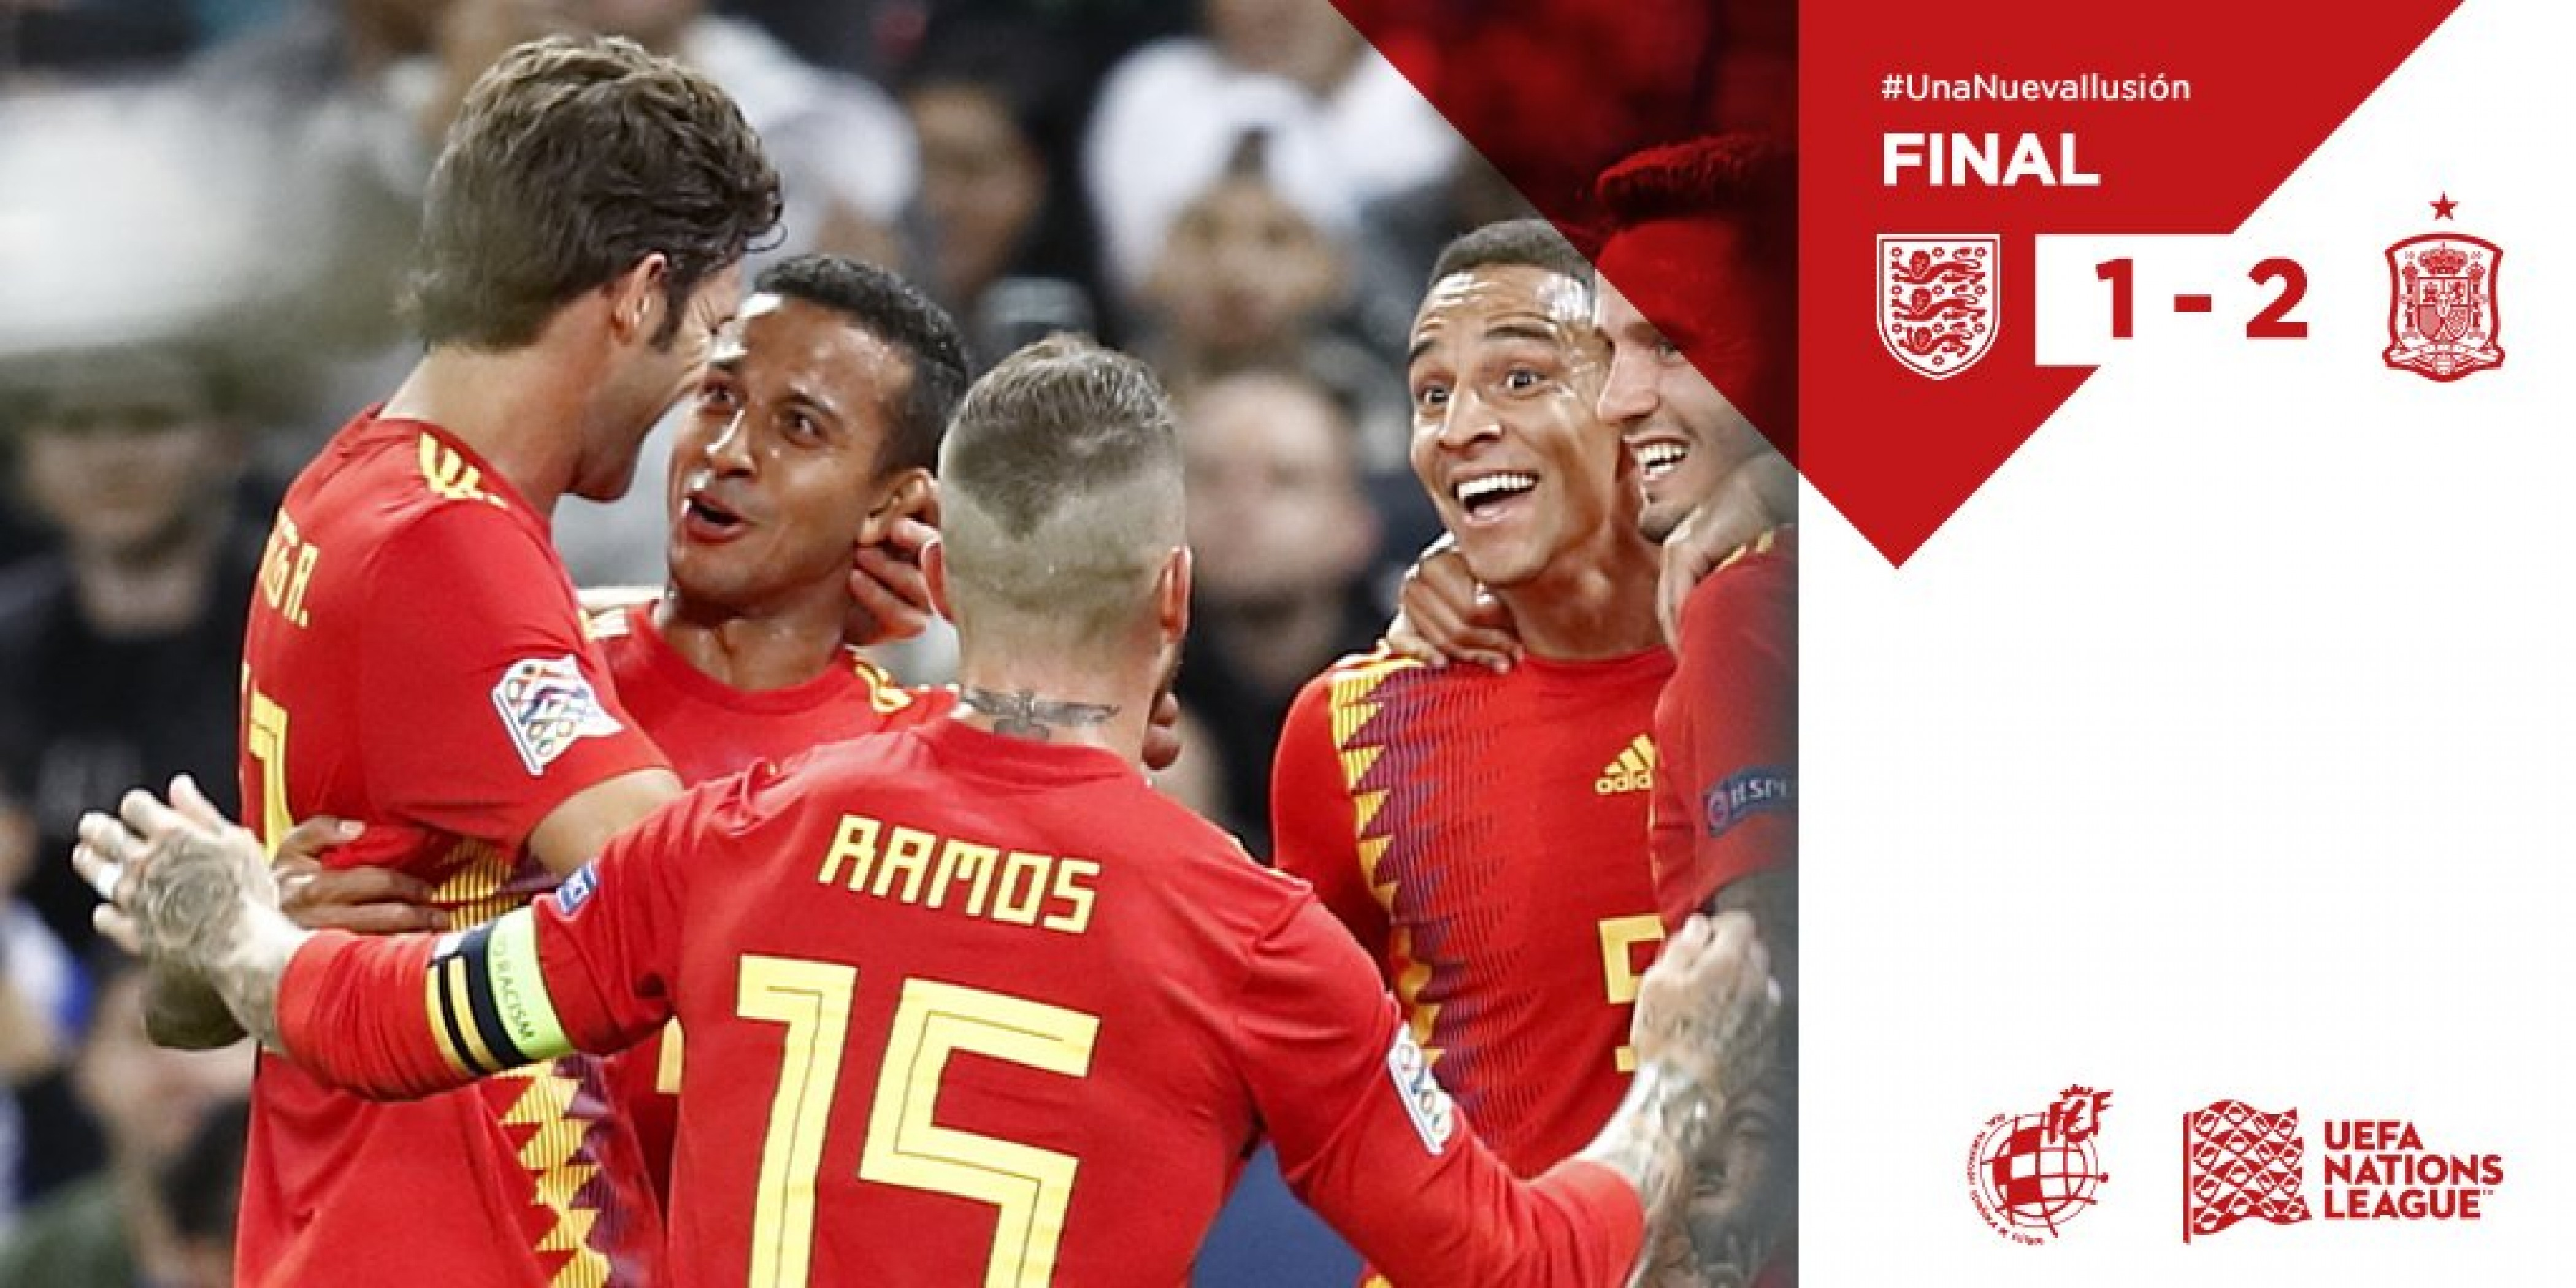 Nations League - La Spagna espugna Wembley: battuta l'Inghilterra 1-2